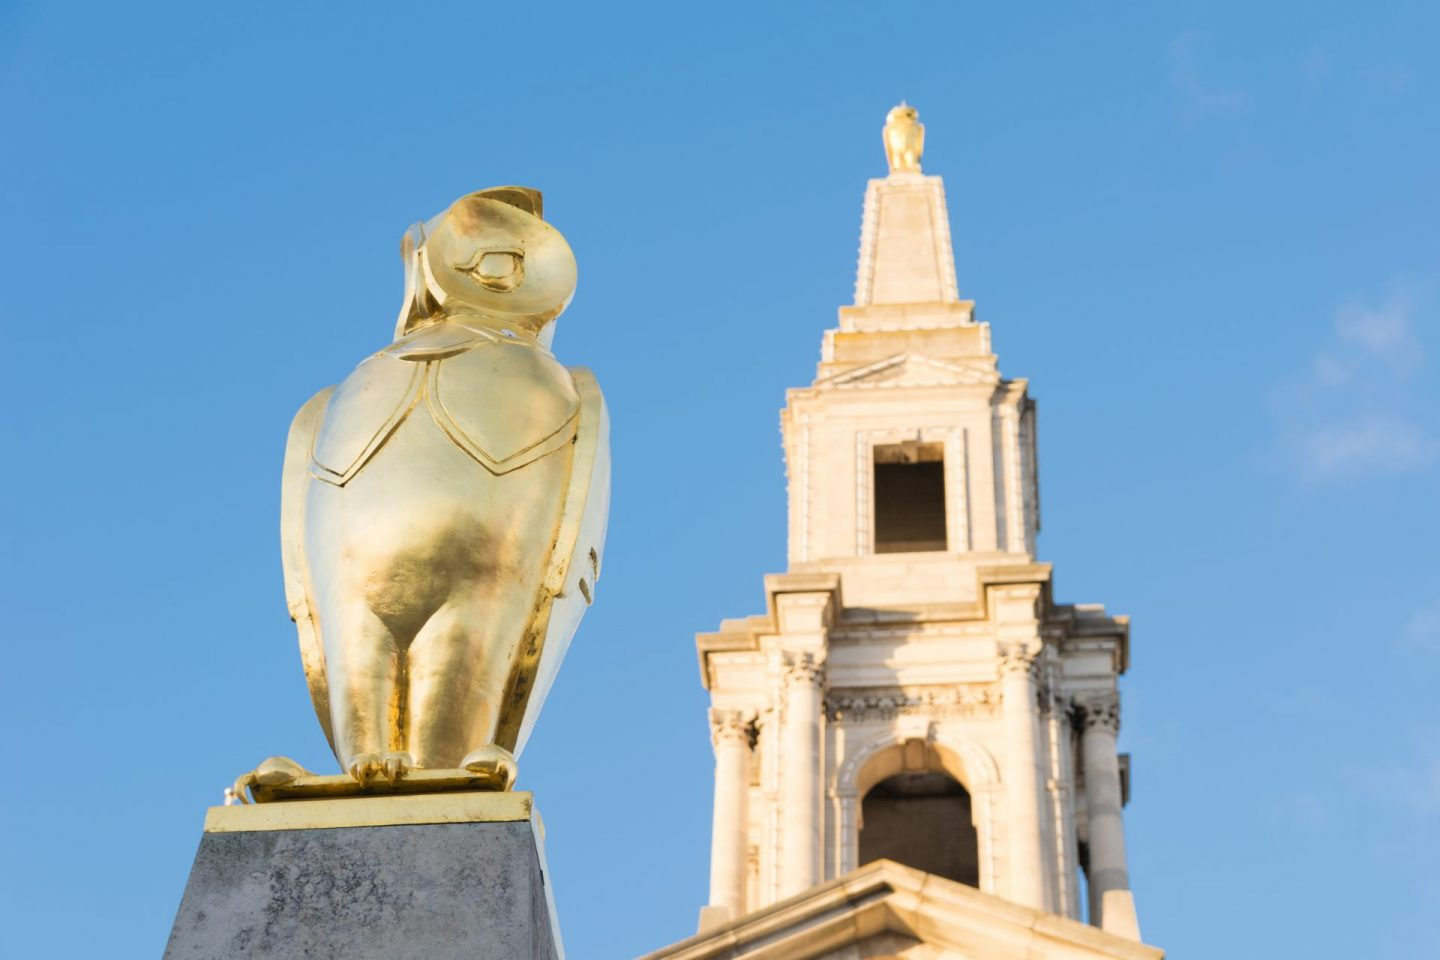 things to do in Leeds city centre - a gold statue of an owl against a clear blue sky